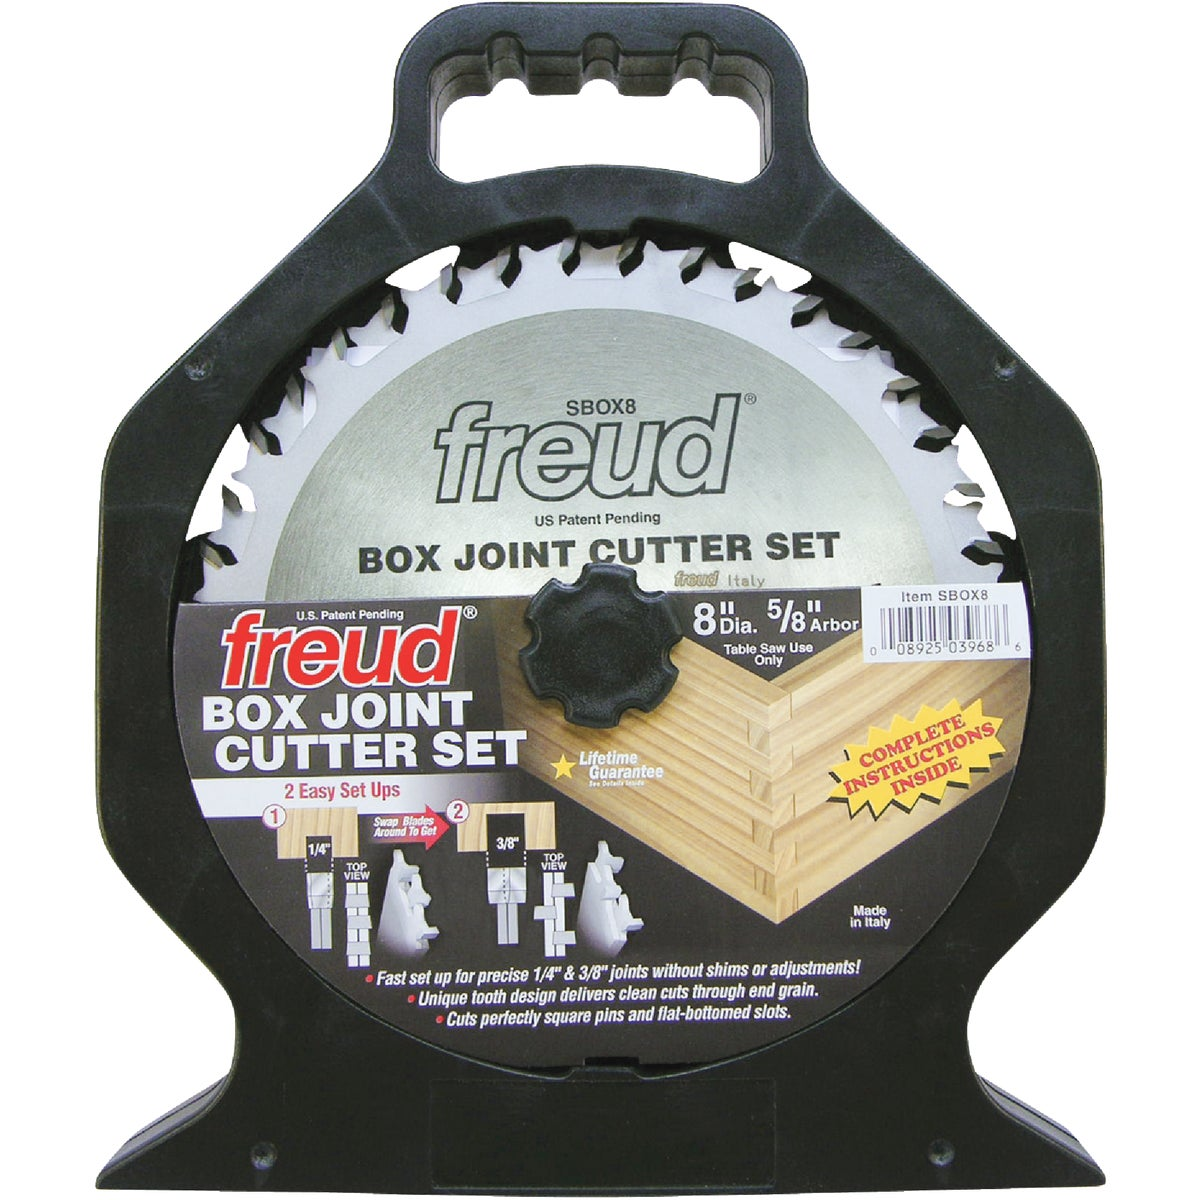 "8"" BOX JOINT CUTTER - SBOX8 by Freud Inc"